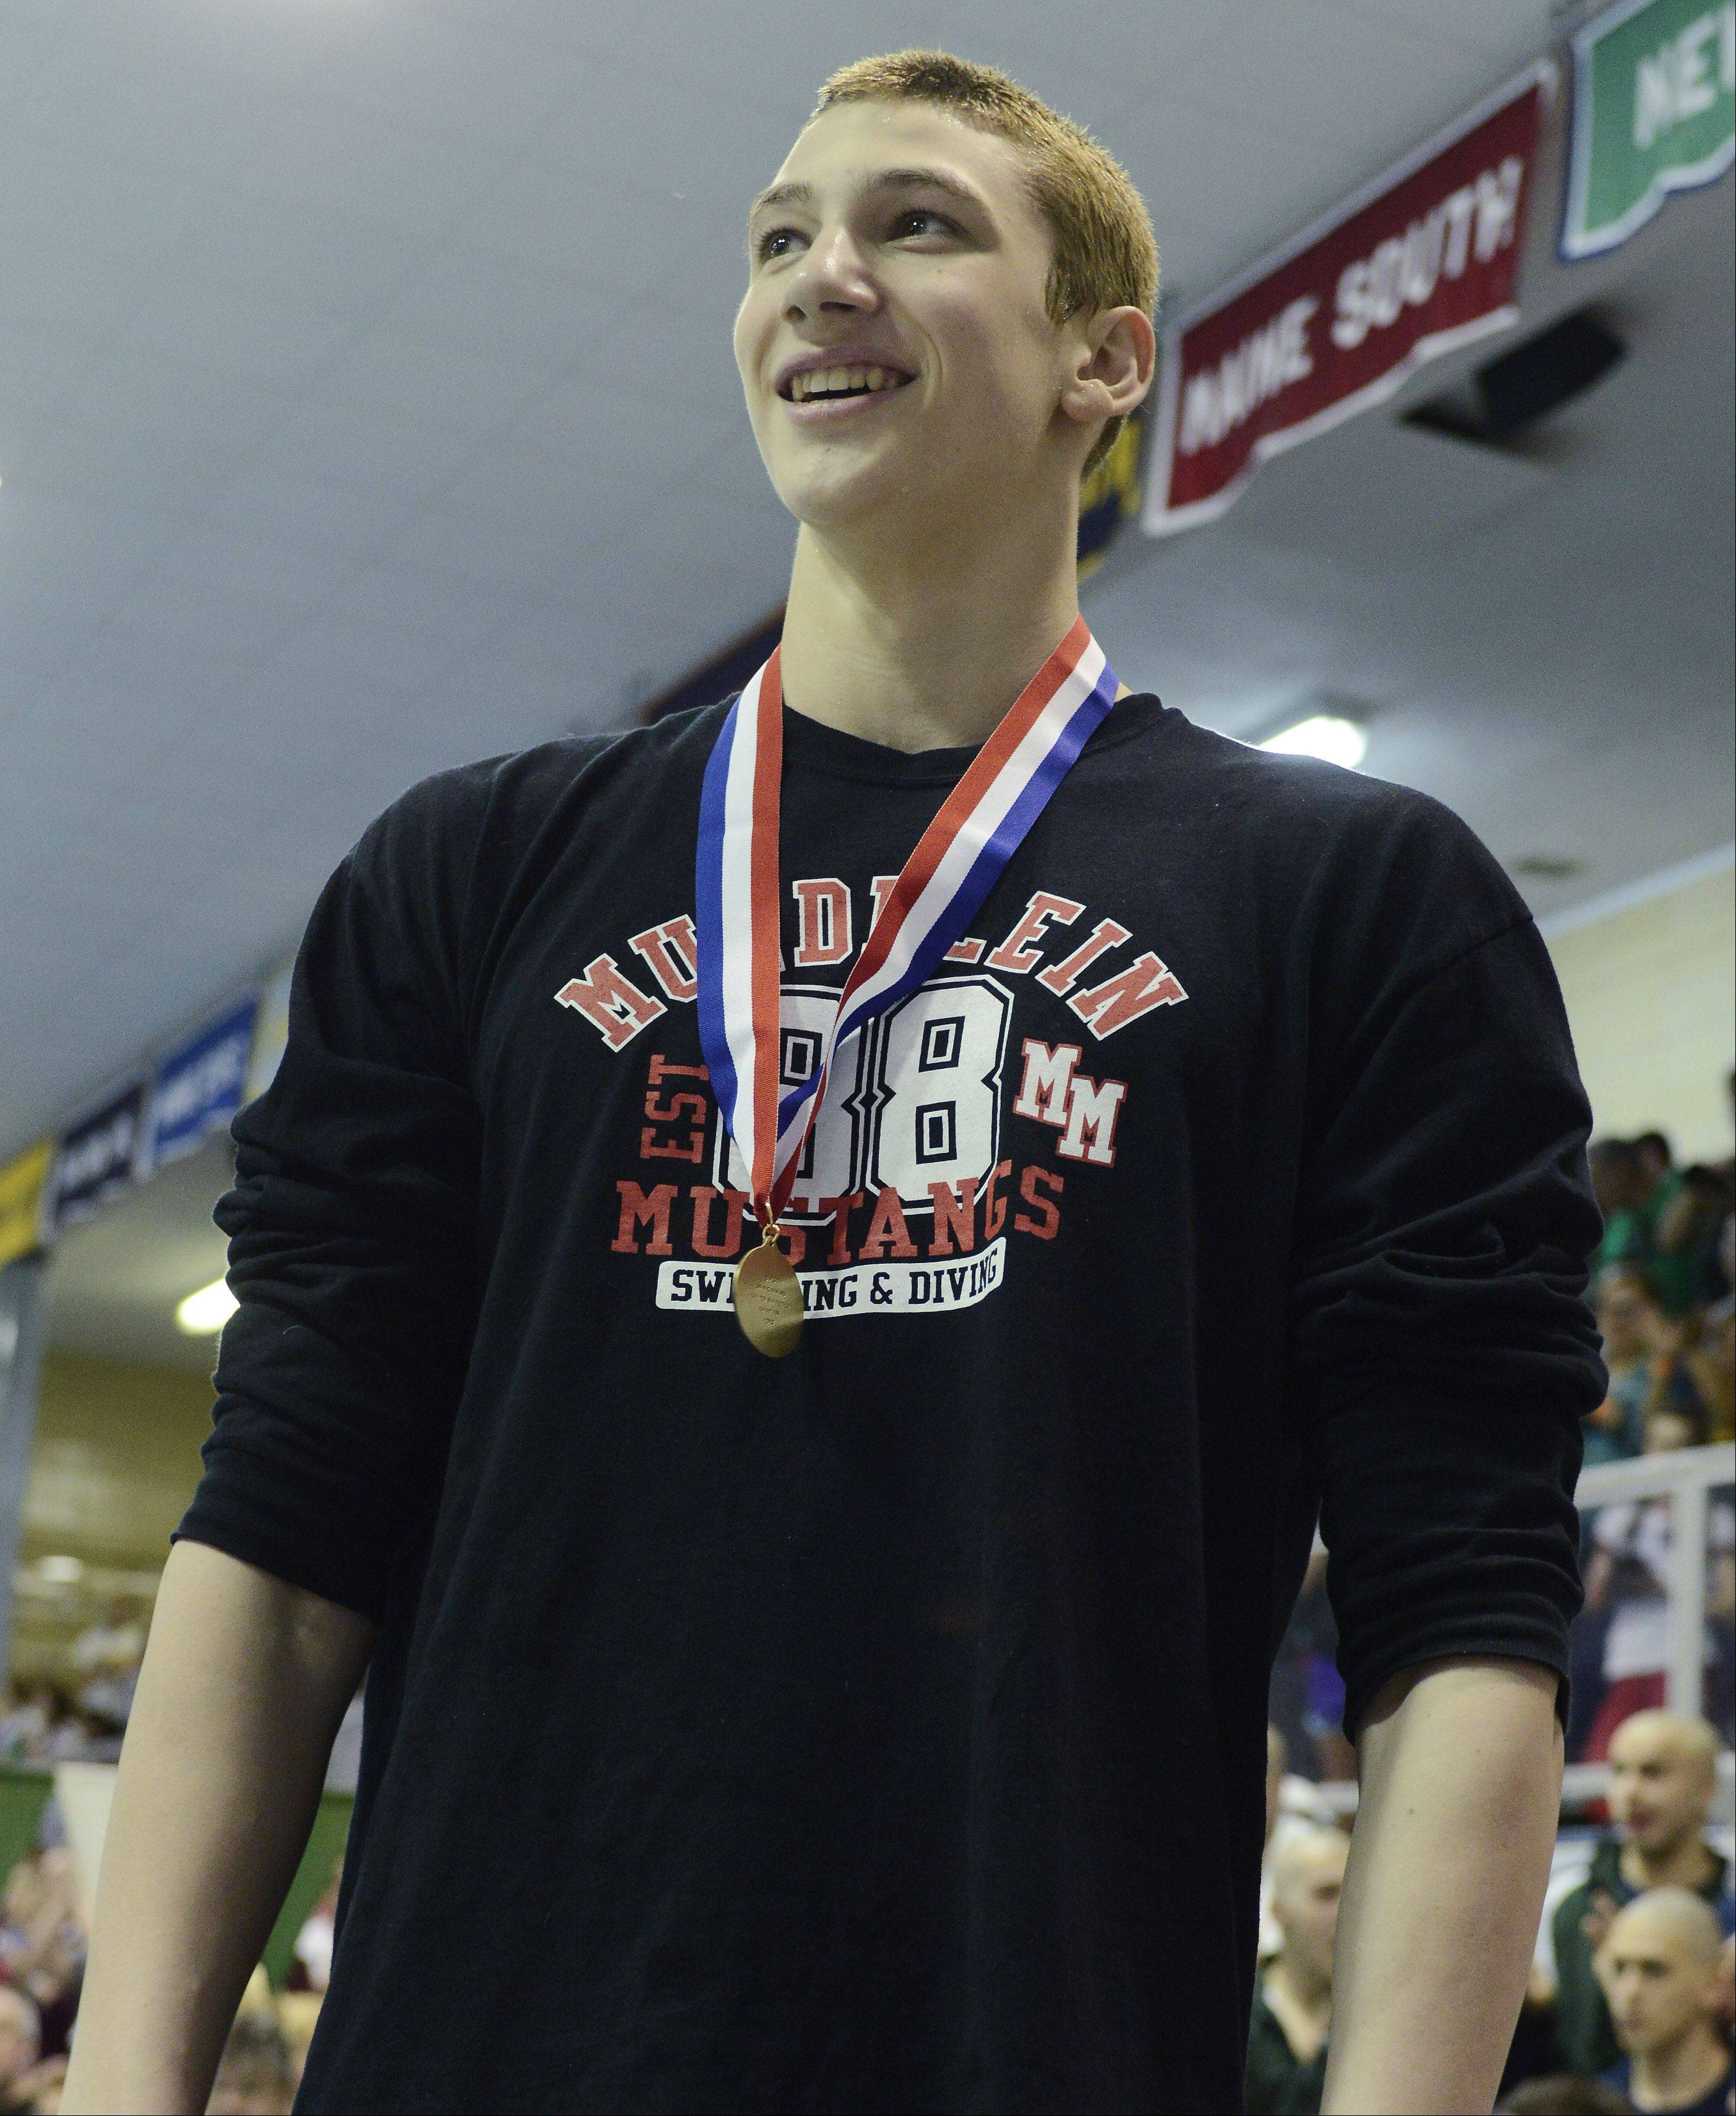 Mundelein's Connor Black smiles on the award stand after setting national of 46.71 in the 100-yard butterfly in the boys swimming state finals at New Trier High School in Winnetka on Saturday.